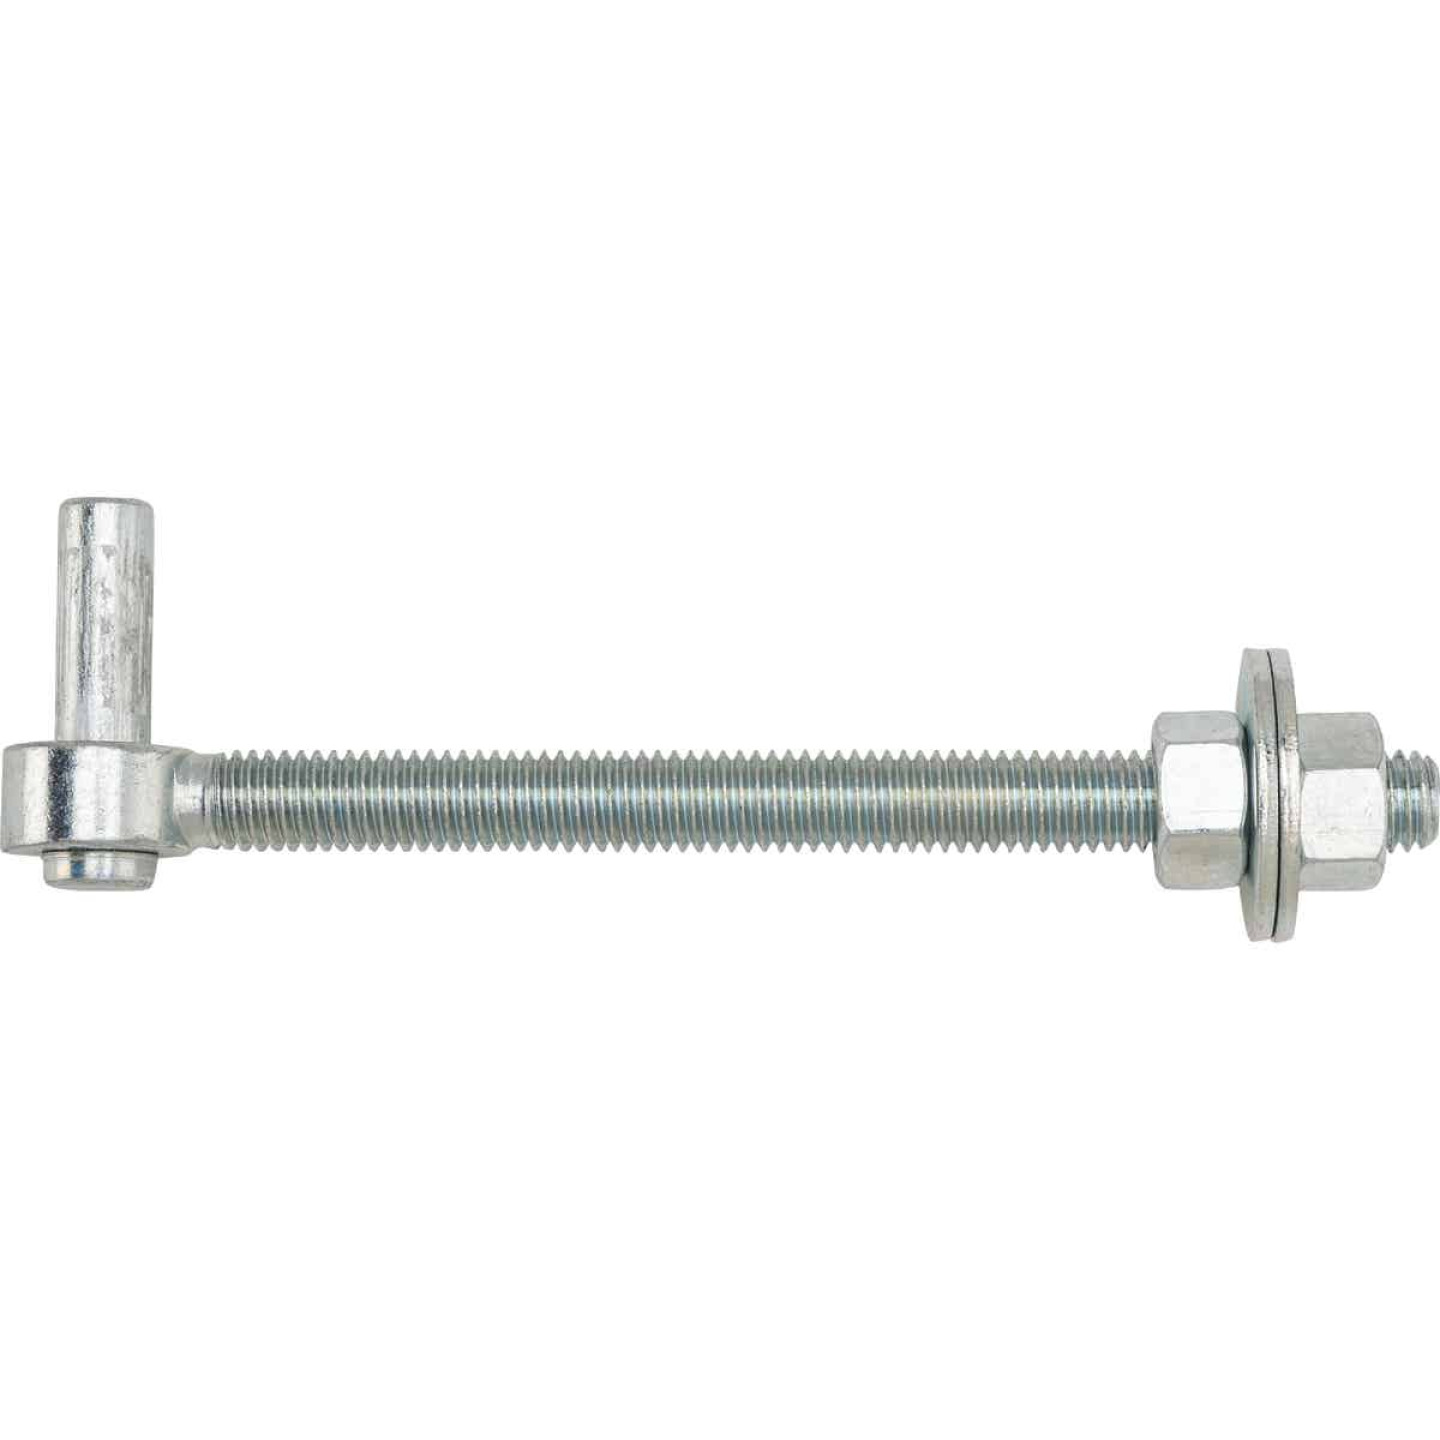 National 1/2 In. x 6 In. Zinc Bolt Hook Image 2